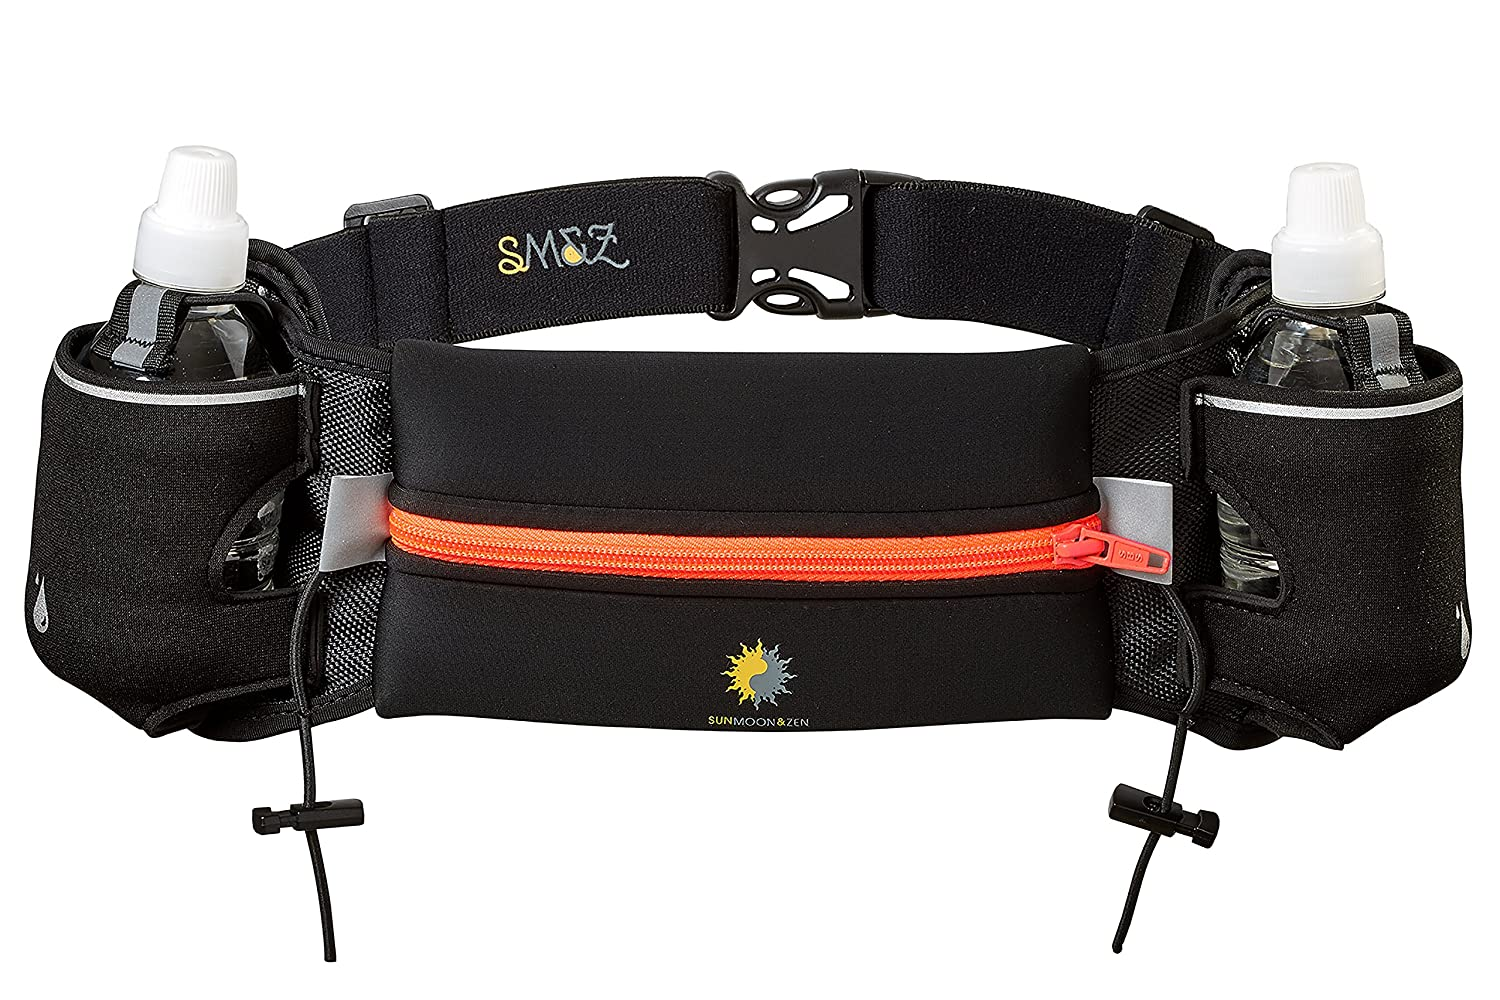 (Black and Orange) - Hydration Belt for Runners with Two Pockets a Seven Inch Zippered Pocket to Carry Cell Phones, Snacks, Keys and Money By Sun Moon and Zen (Black and Orange) B01BOGSUA0